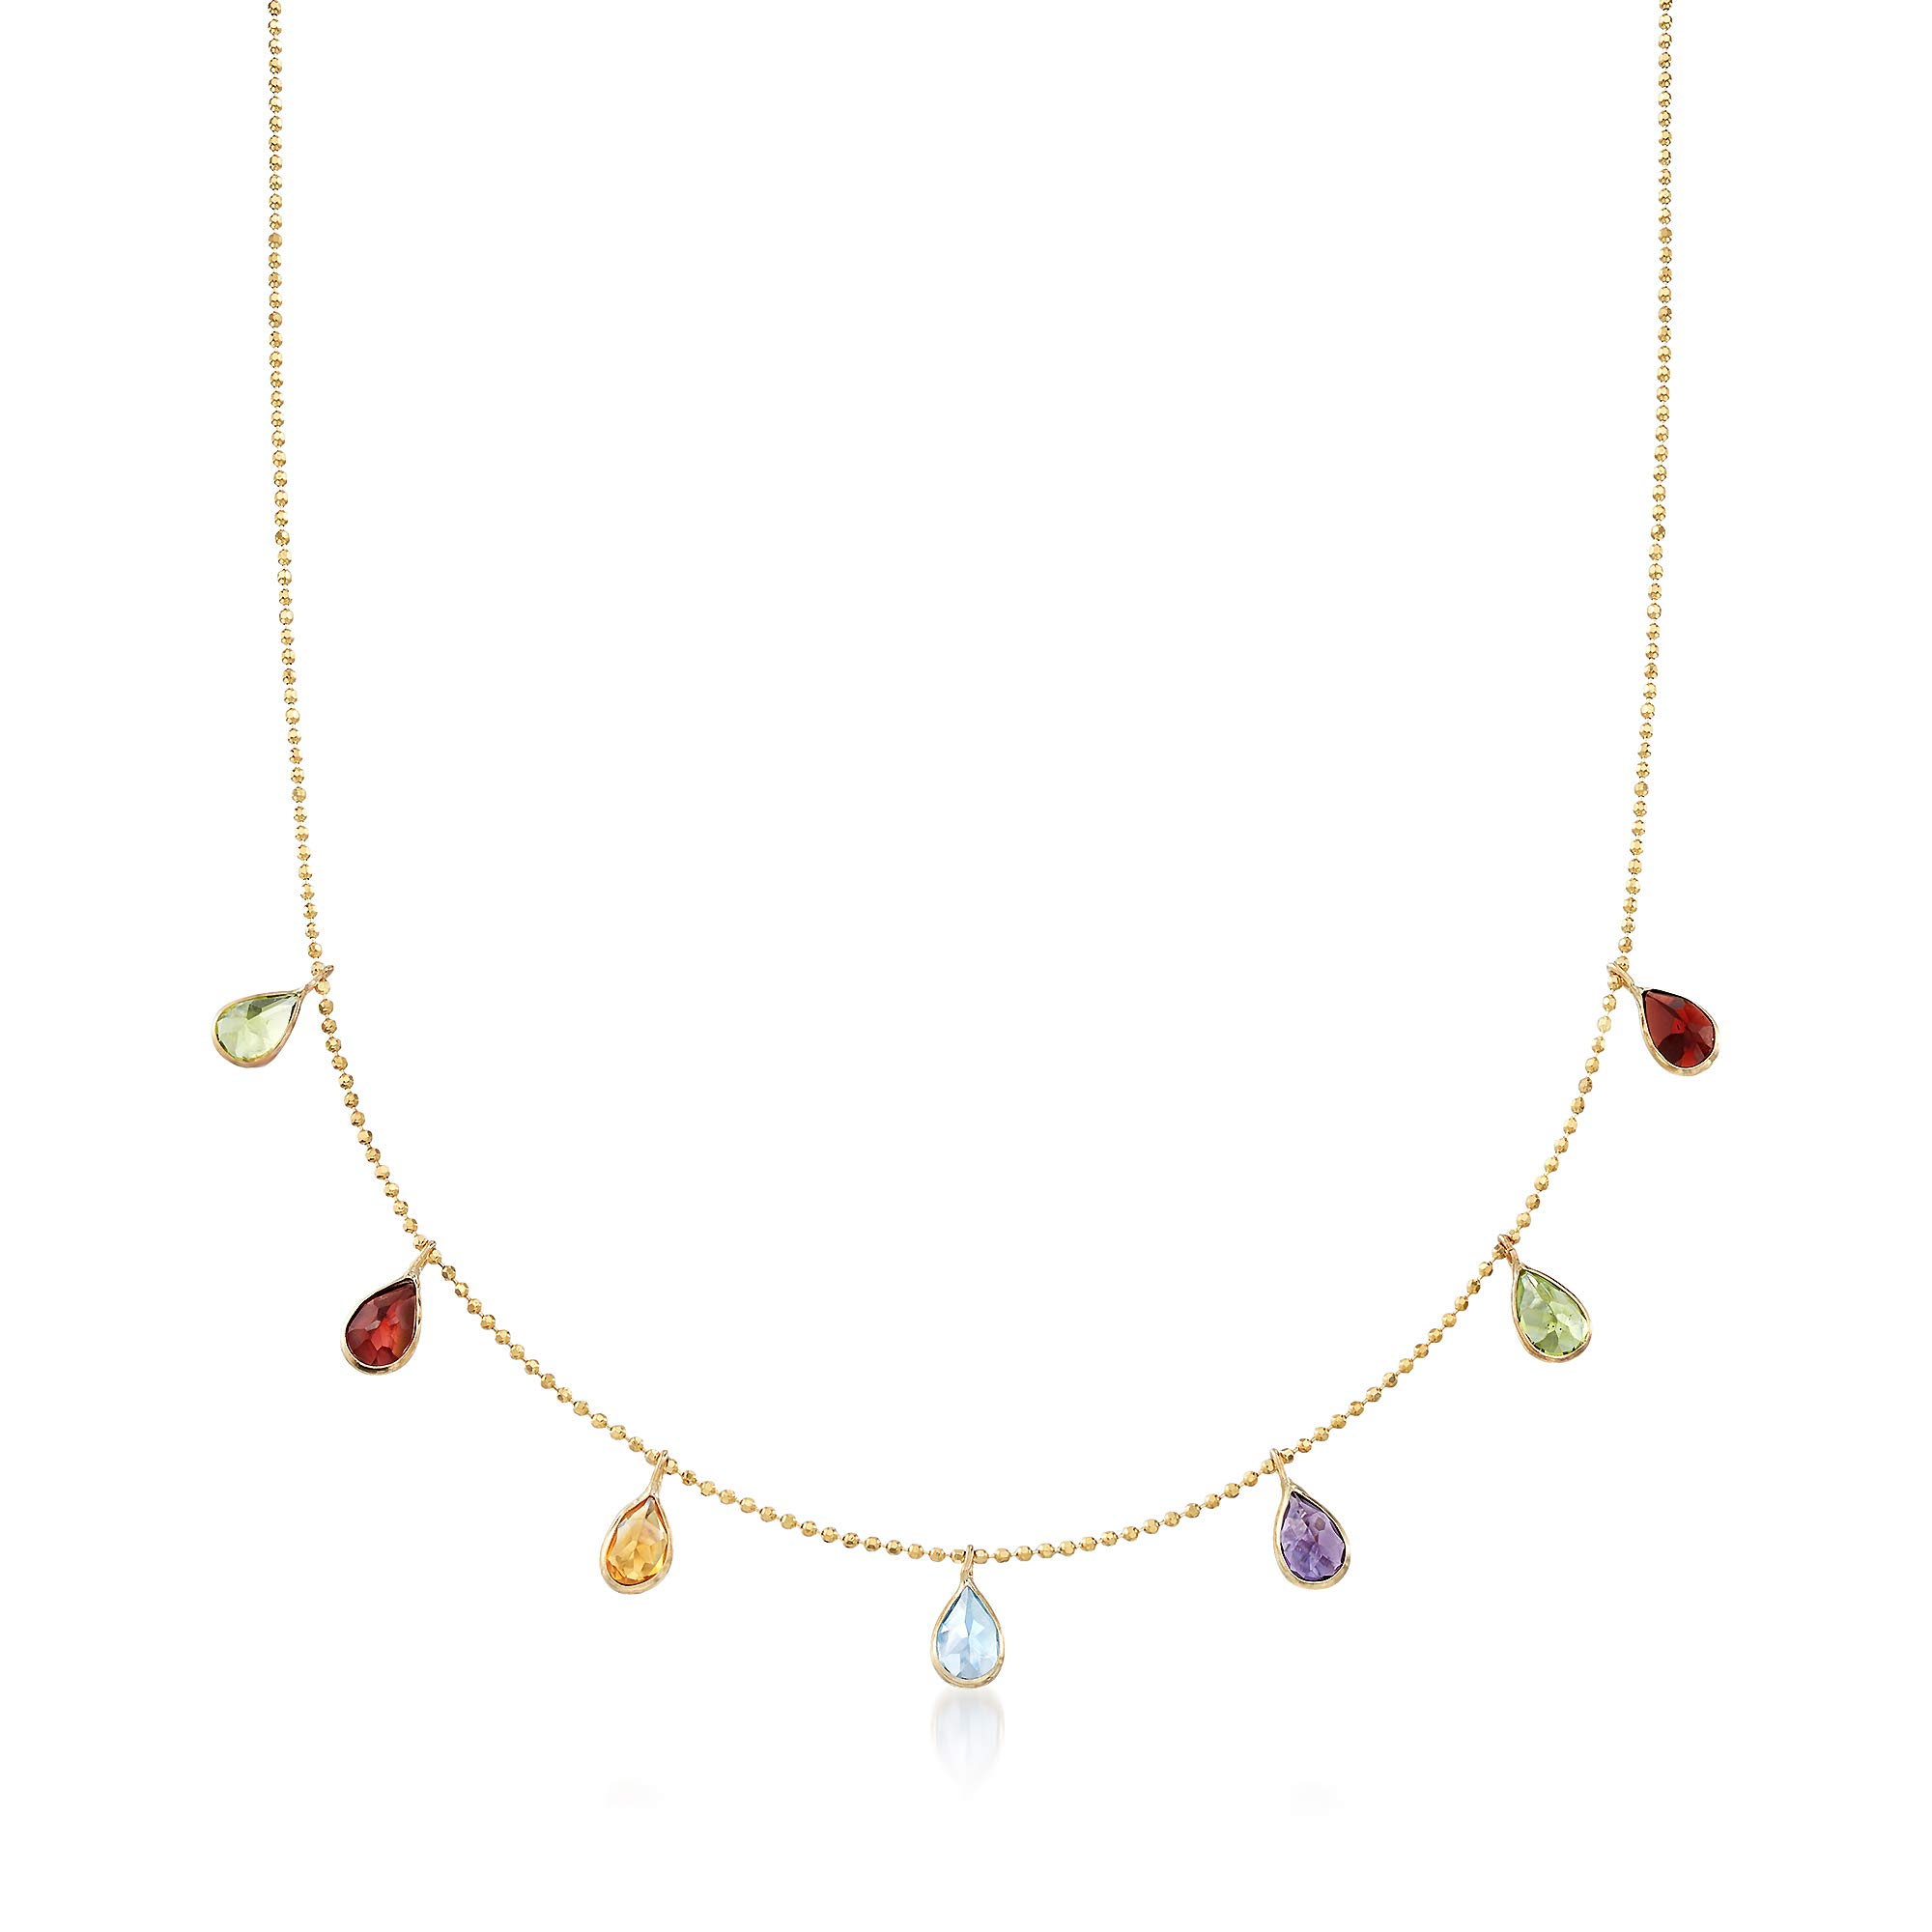 Ross-Simons 2.80 ct. t.w. Multi-Stone Station Necklace in 14kt Yellow Gold